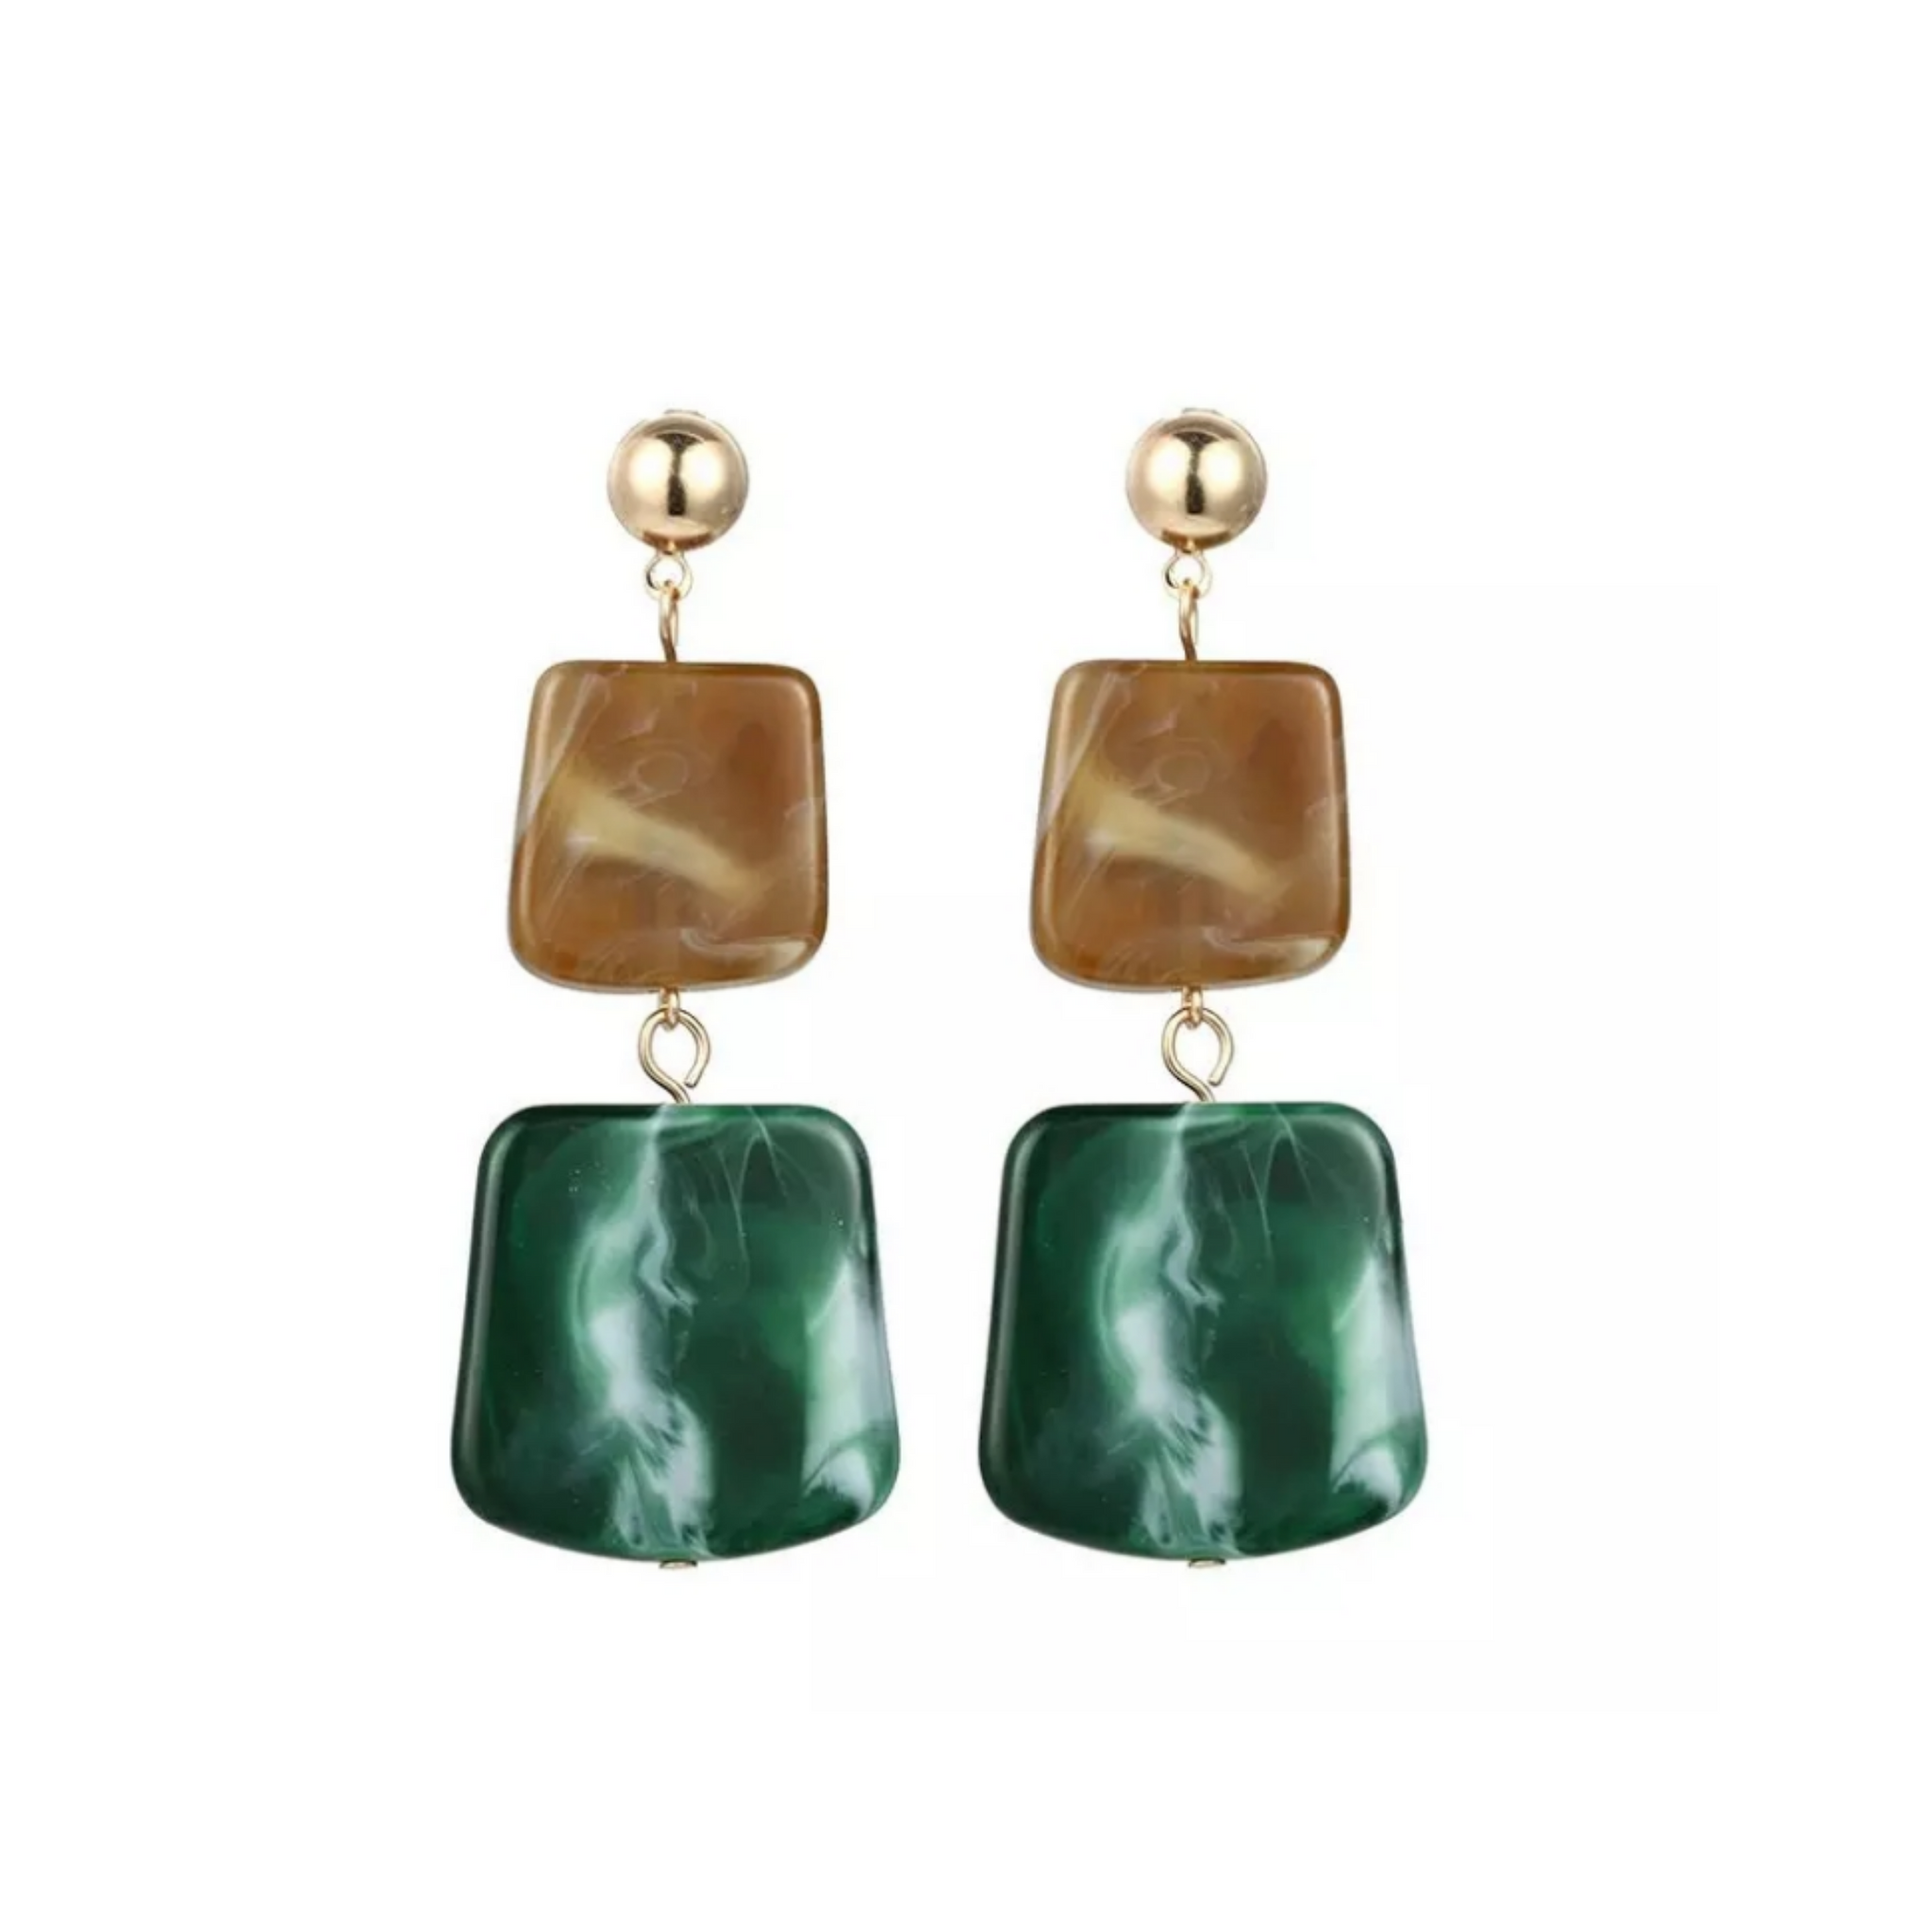 Marble Earrings - 3 (NEW)